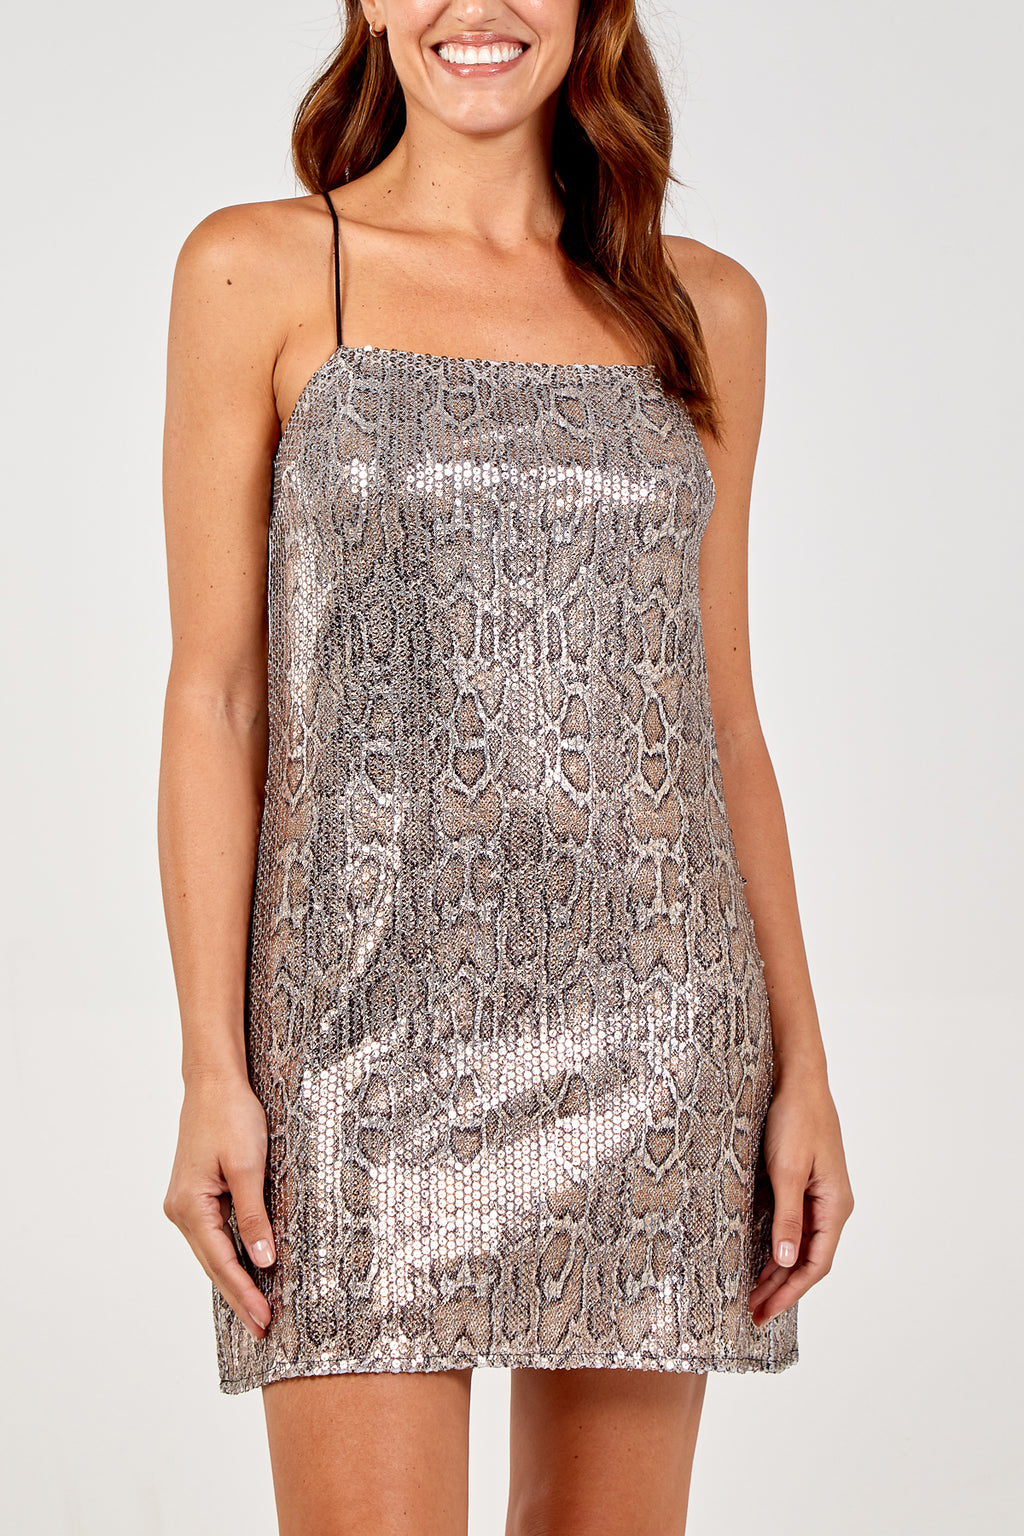 Snake Sequin Mini Dress